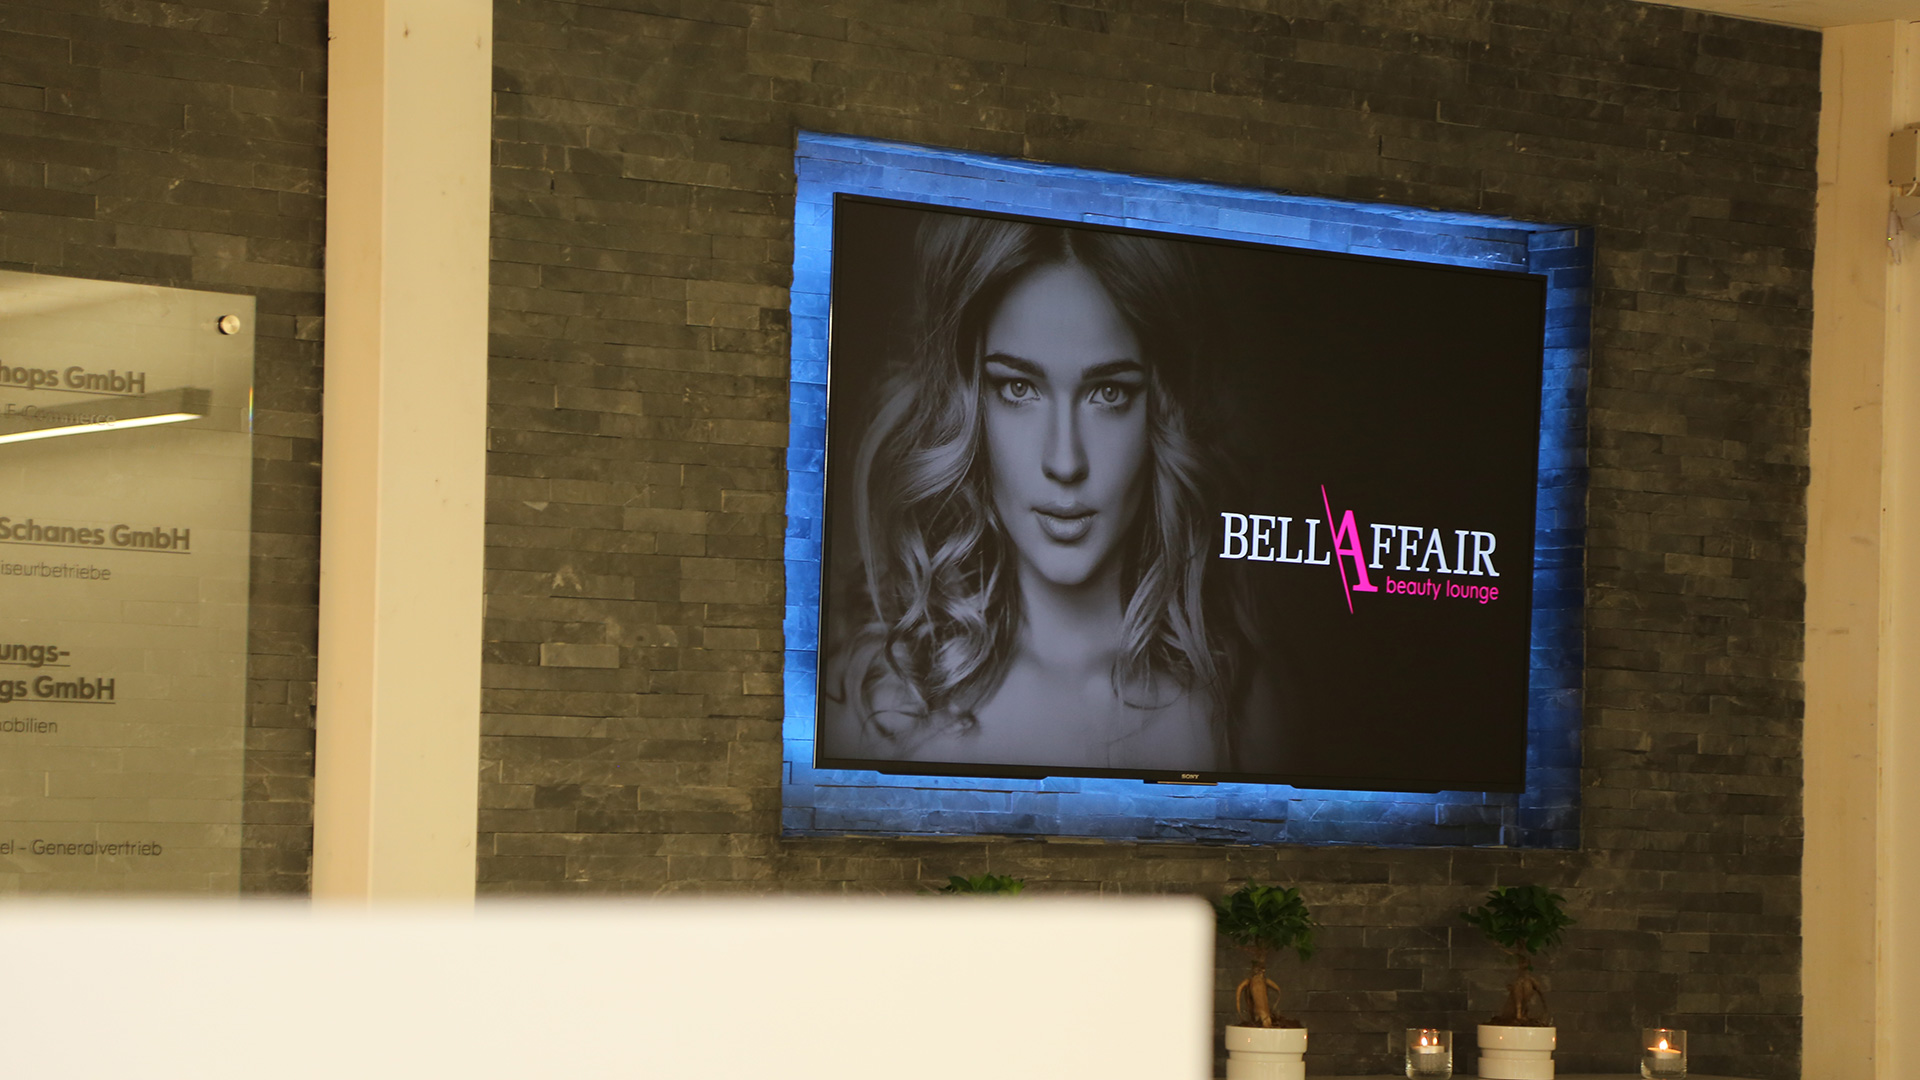 Friseurbedarf BellAffair Beauty Lounge